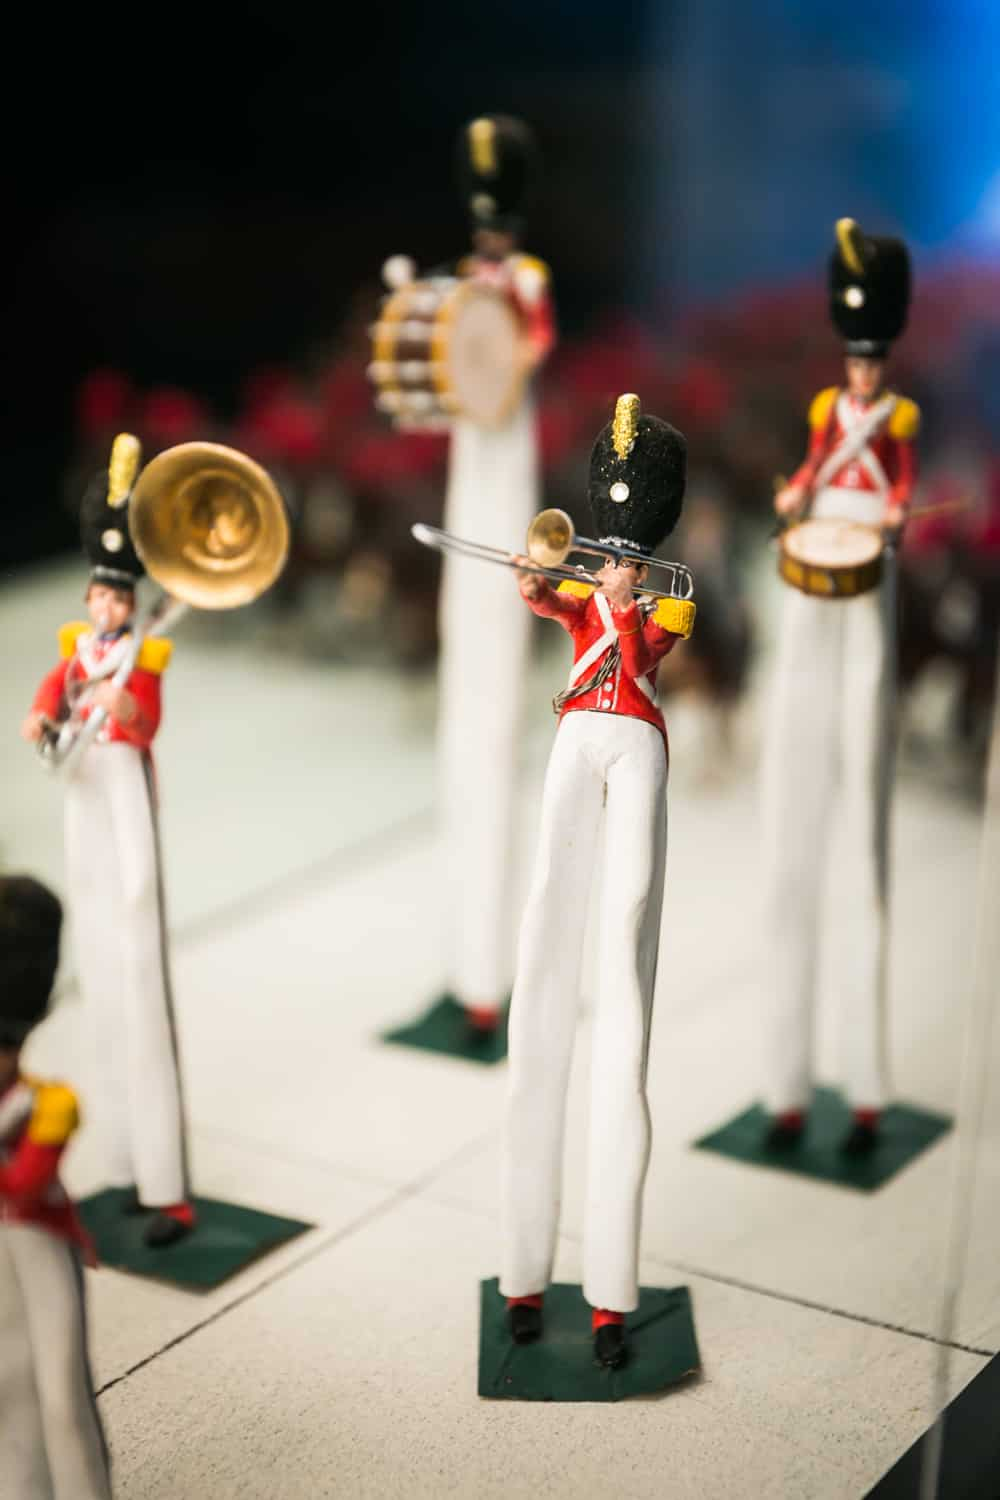 Miniature band performers with extra long legs